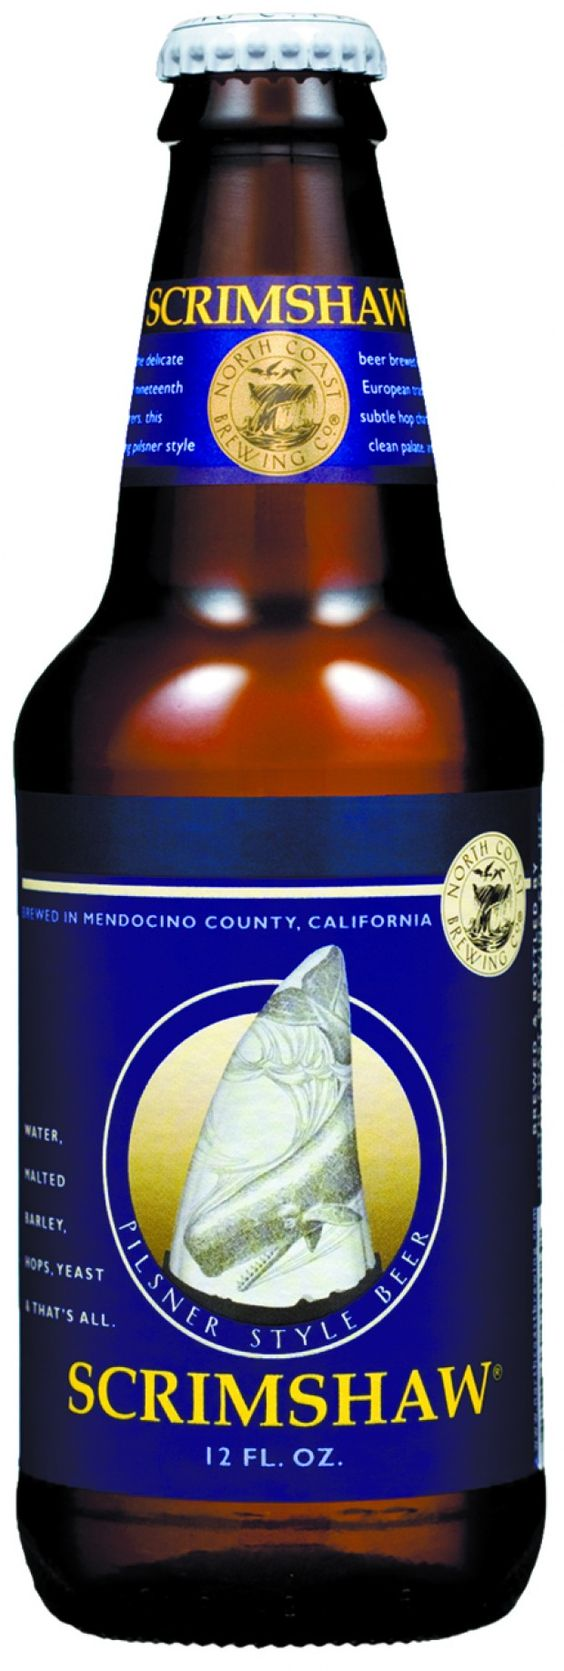 north coast beer - Google Search